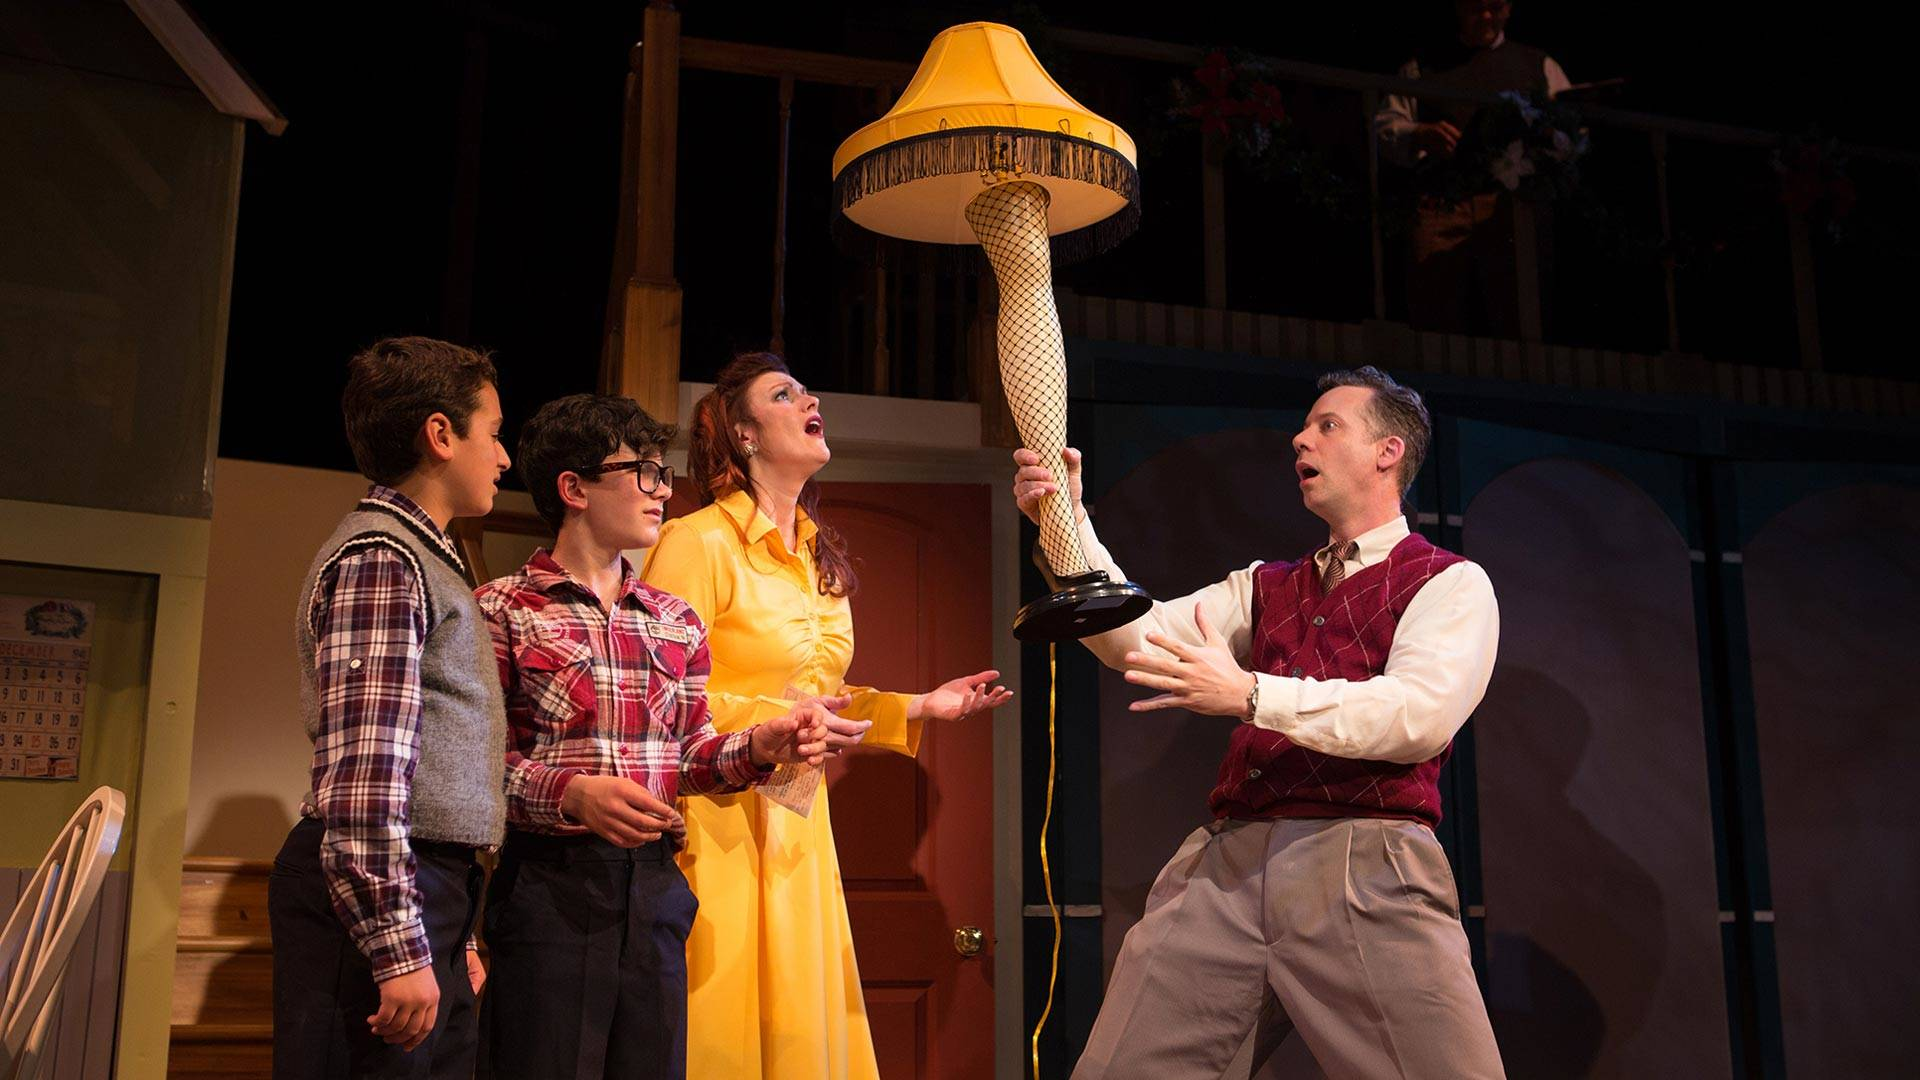 The Old Man (Ryan Drummond, right) unveils his major award as Randy (Jake Miller), Ralphie (Jonah Broscow), and Mother (Abby Haug) express their puzzlement in 'A Christmas Story: The Musical' at SF Playhouse.